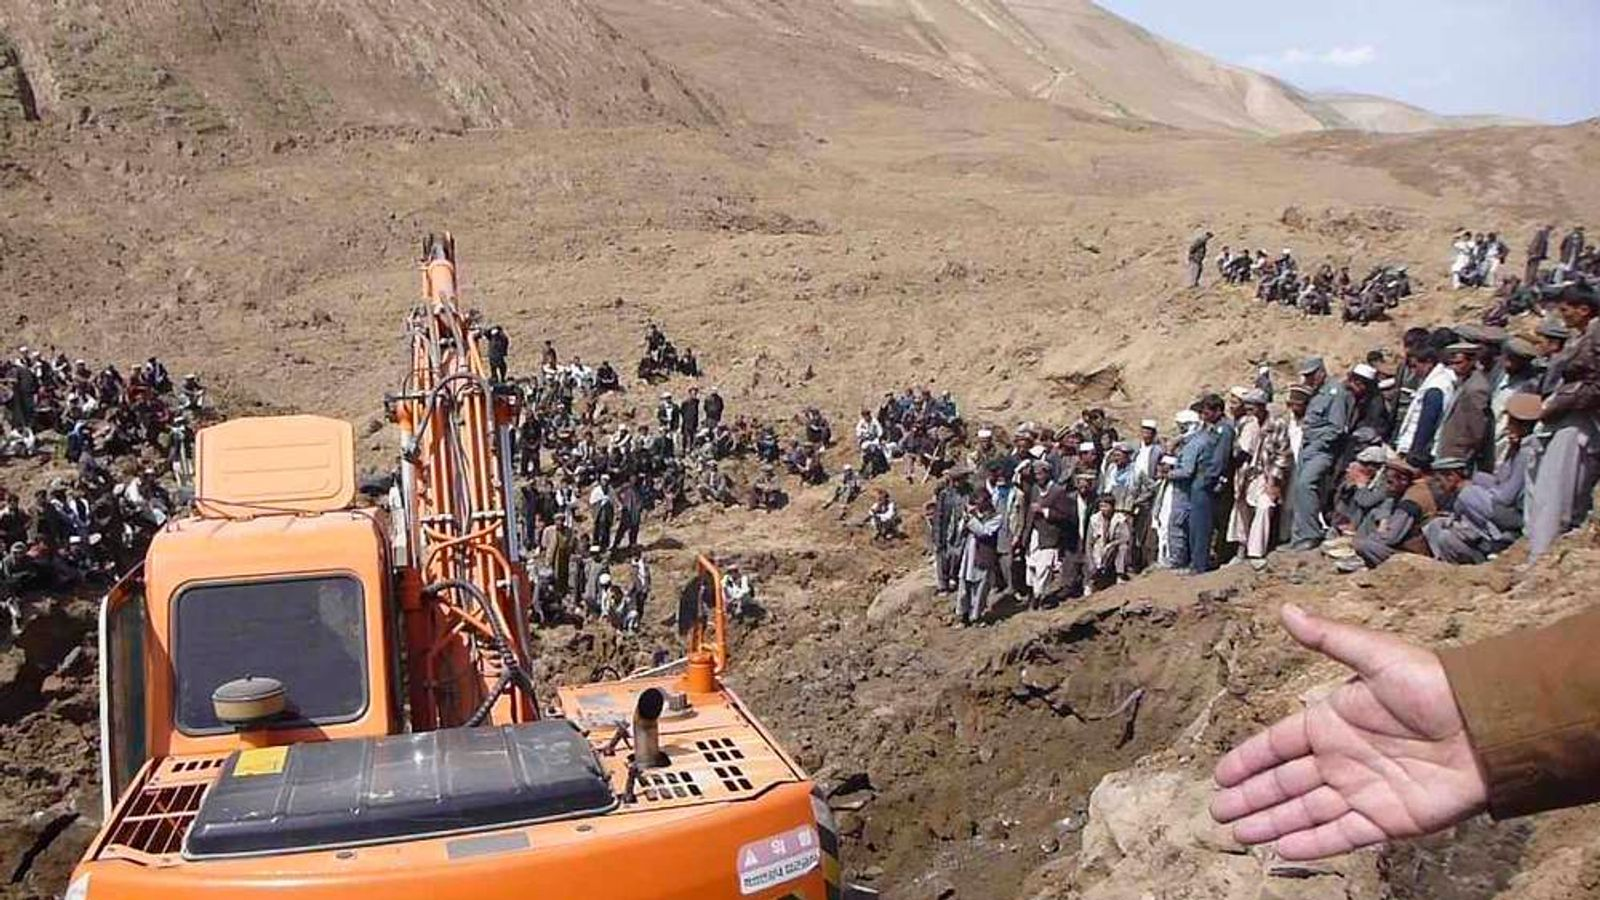 An excavator digs at the site of a landslide at the Argo district in Badakhshan province.